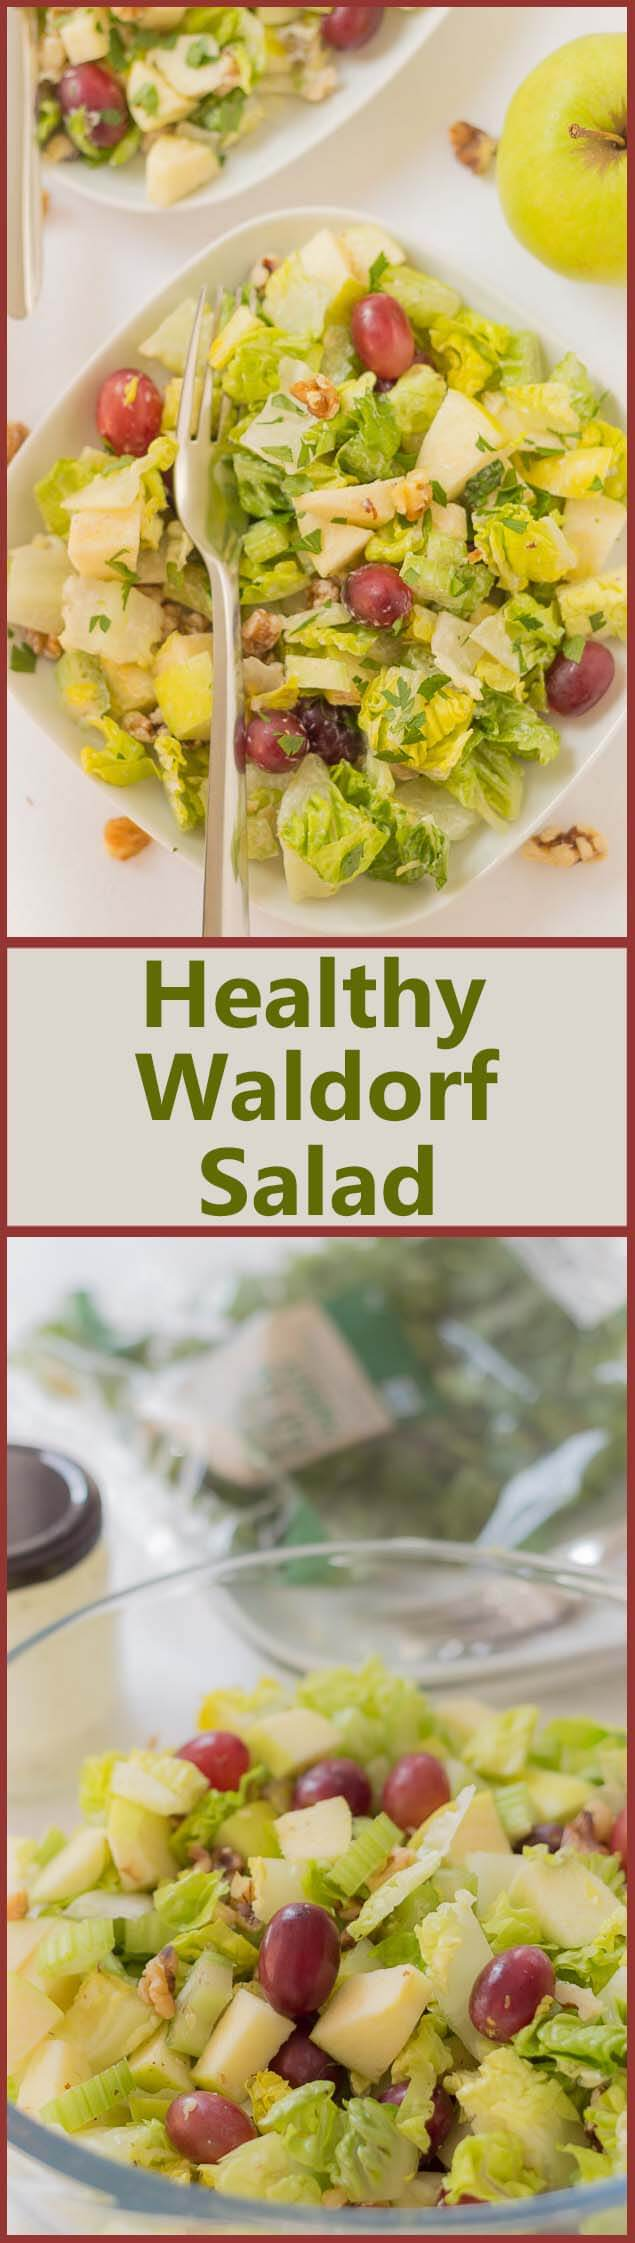 Classic Waldorf salad, made with a reduced fat, reduced calorie dressing. Easy and quick to make up in the morning and perfect as a packed lunch or as a light healthy snack.